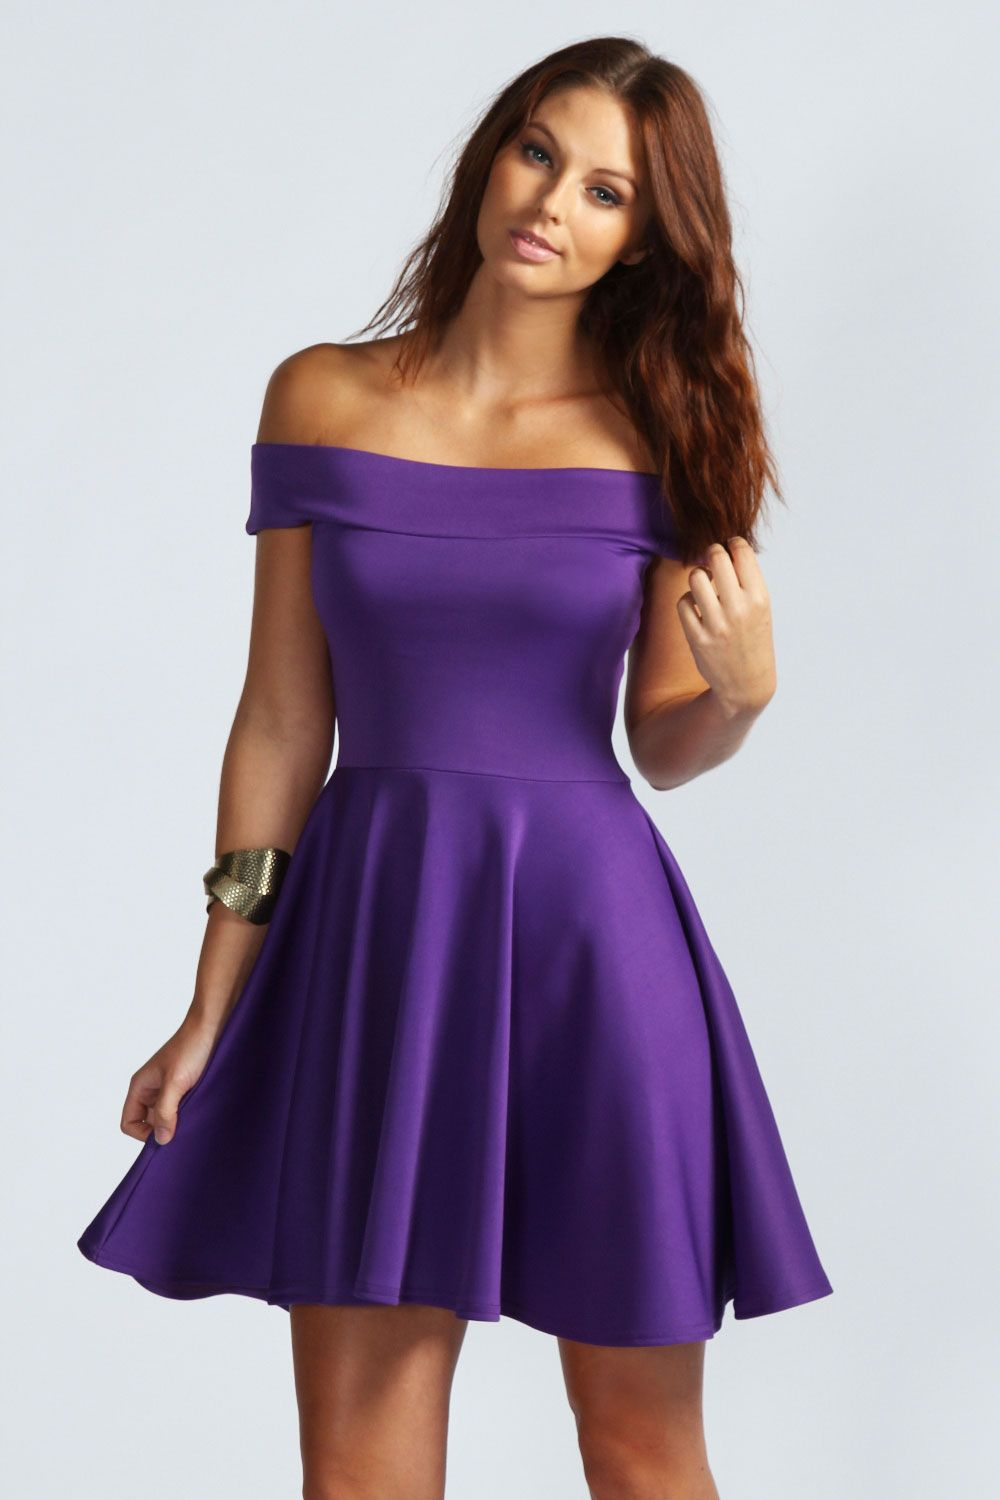 style skater dress tamsin